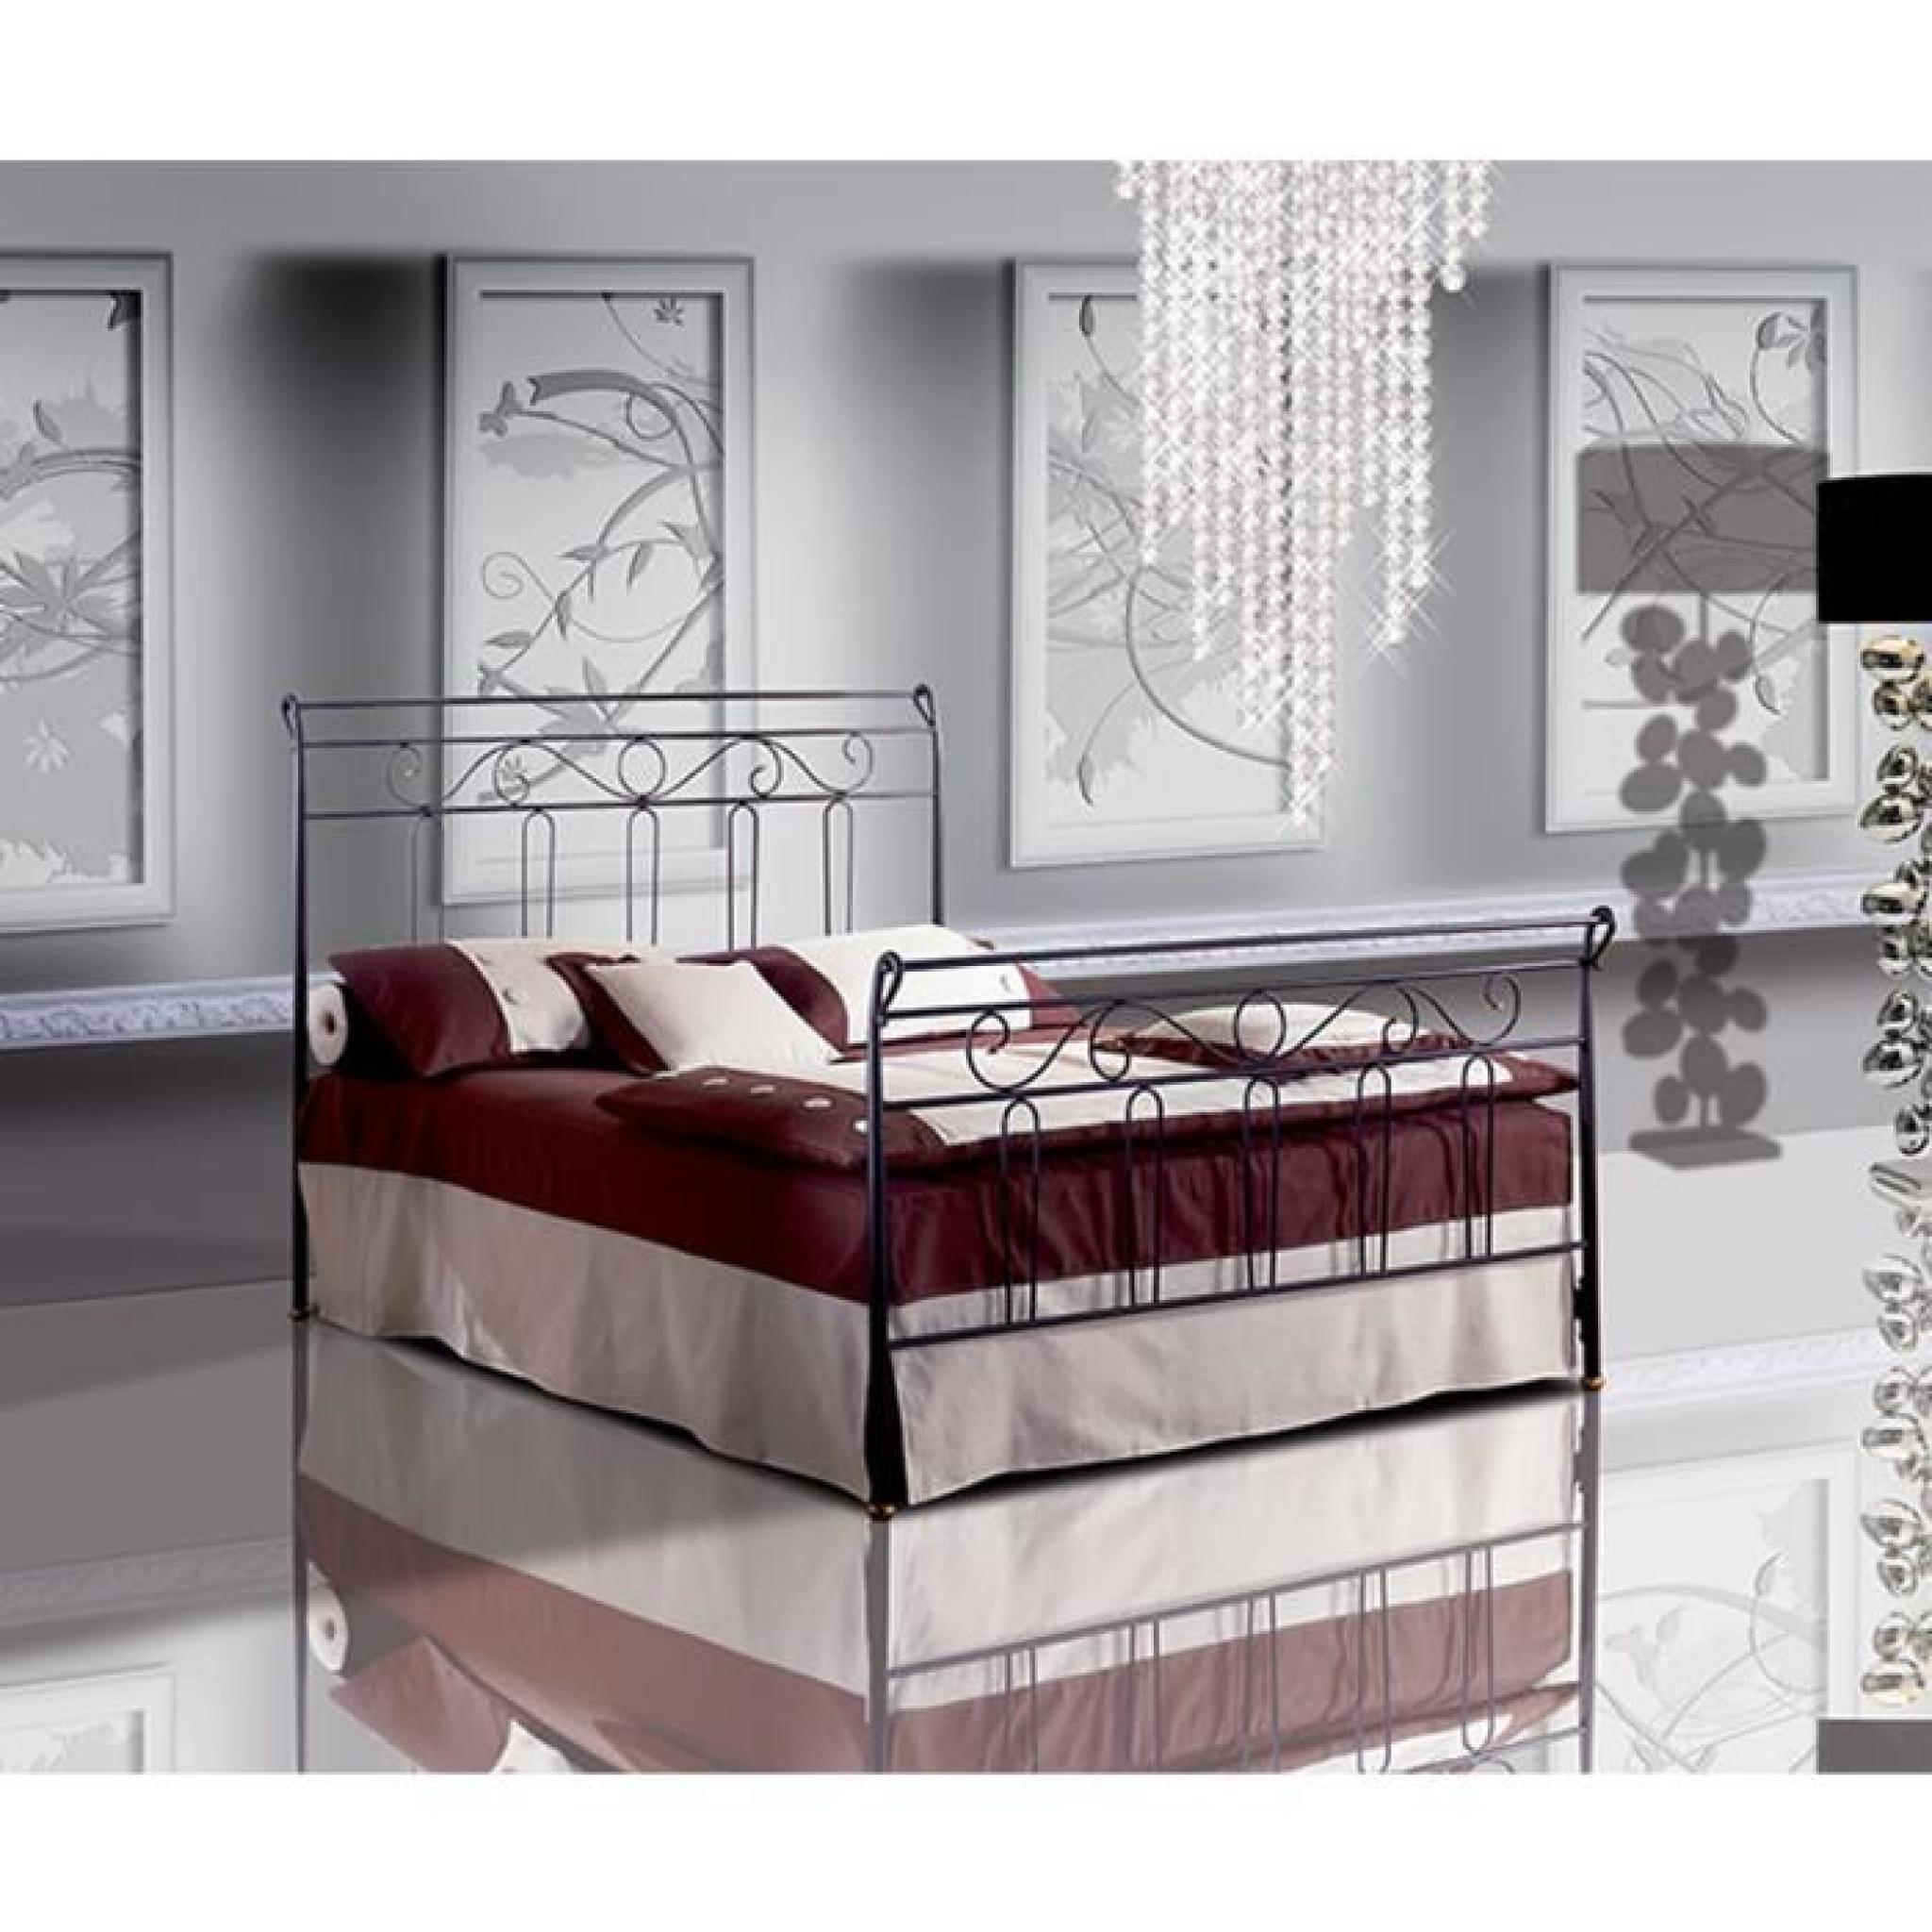 lit une personne en fer forg garofano t te de lit fix e au mur achat vente lit pas cher. Black Bedroom Furniture Sets. Home Design Ideas